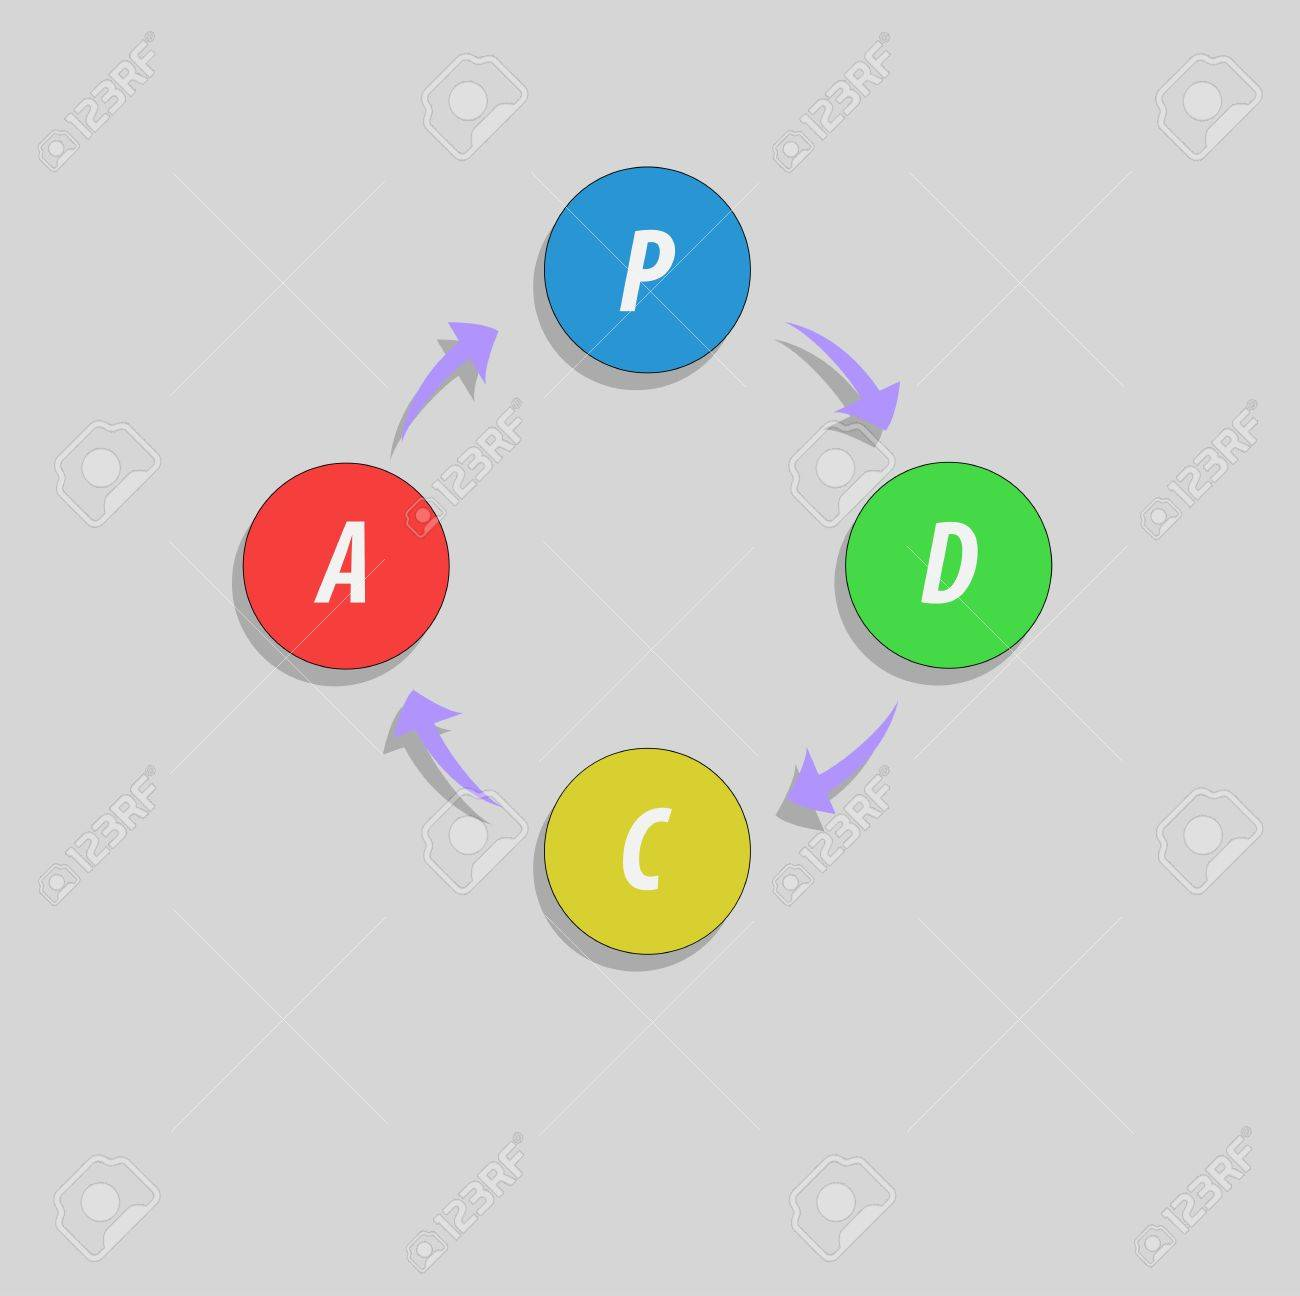 Process cycling arrow by arrow royalty free stock images image - Pdca Plan Do Check Act Method Deming Cycle Circle